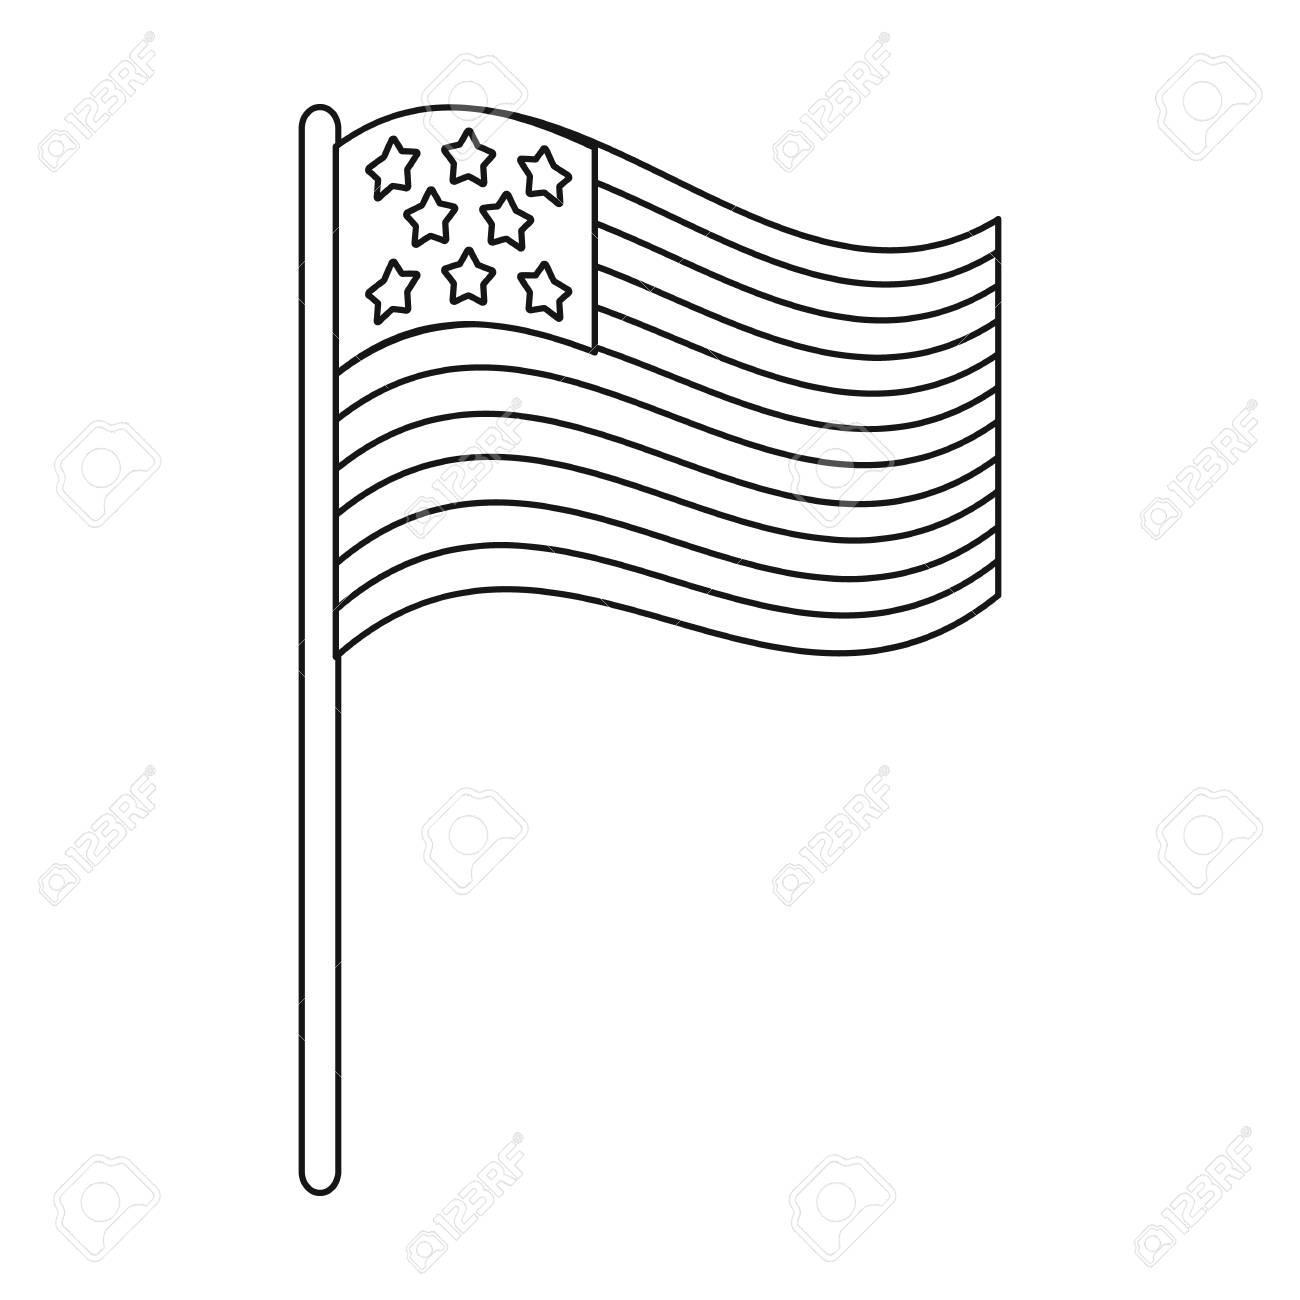 American Flag Icon In Outline Style Isolated On White Background Royalty Free Cliparts Vectors And Stock Illustration Image 68626415